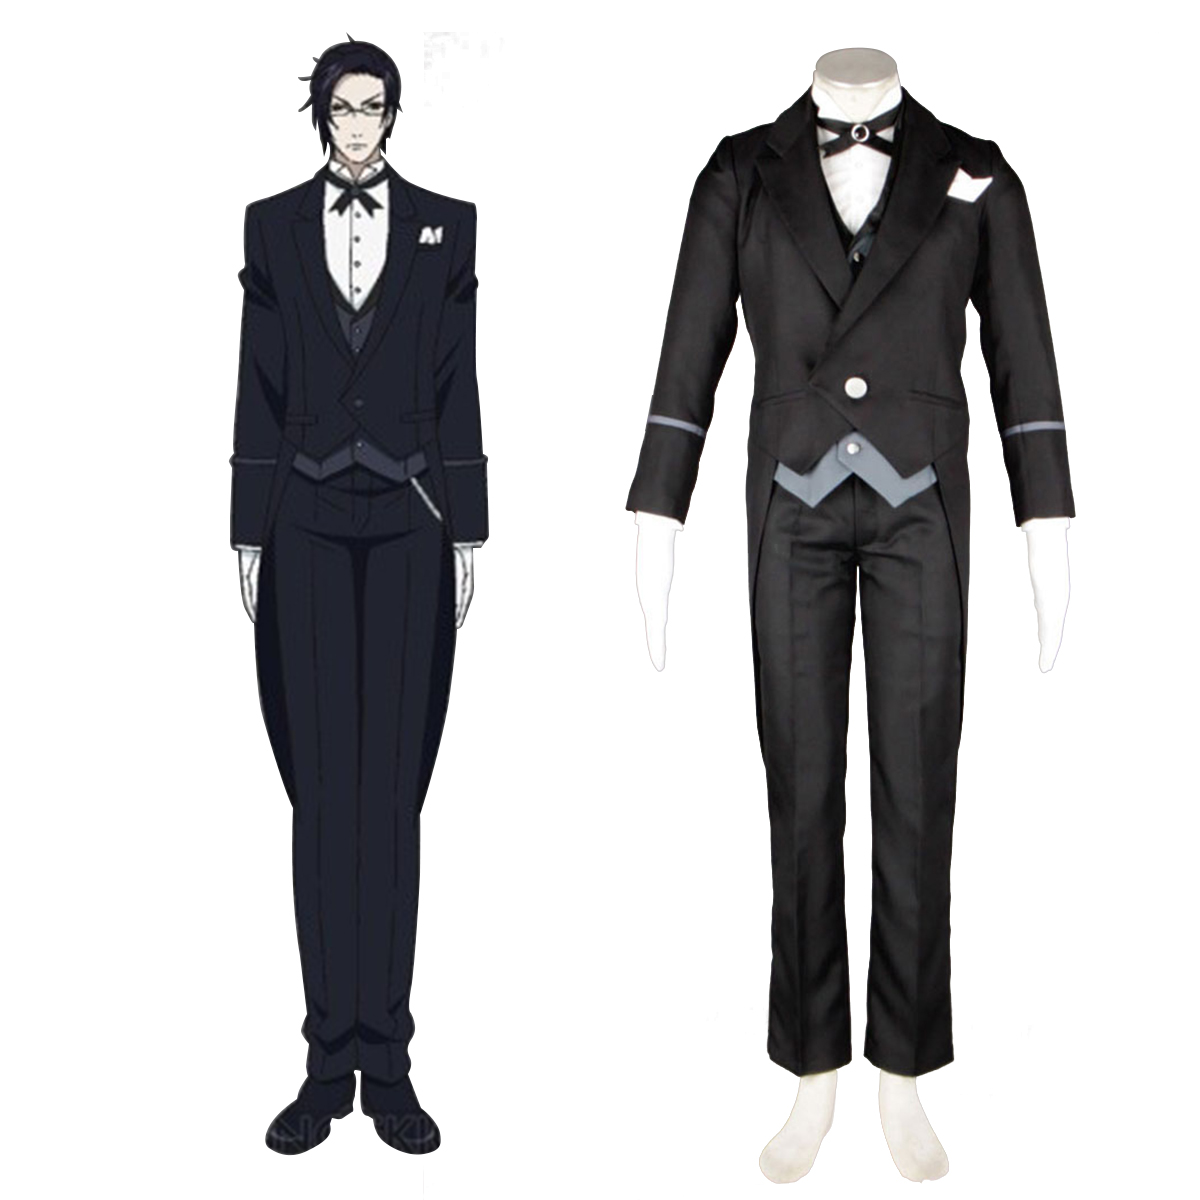 Black Butler Claude Faustus 1 Anime Cosplay Costumes Outfit